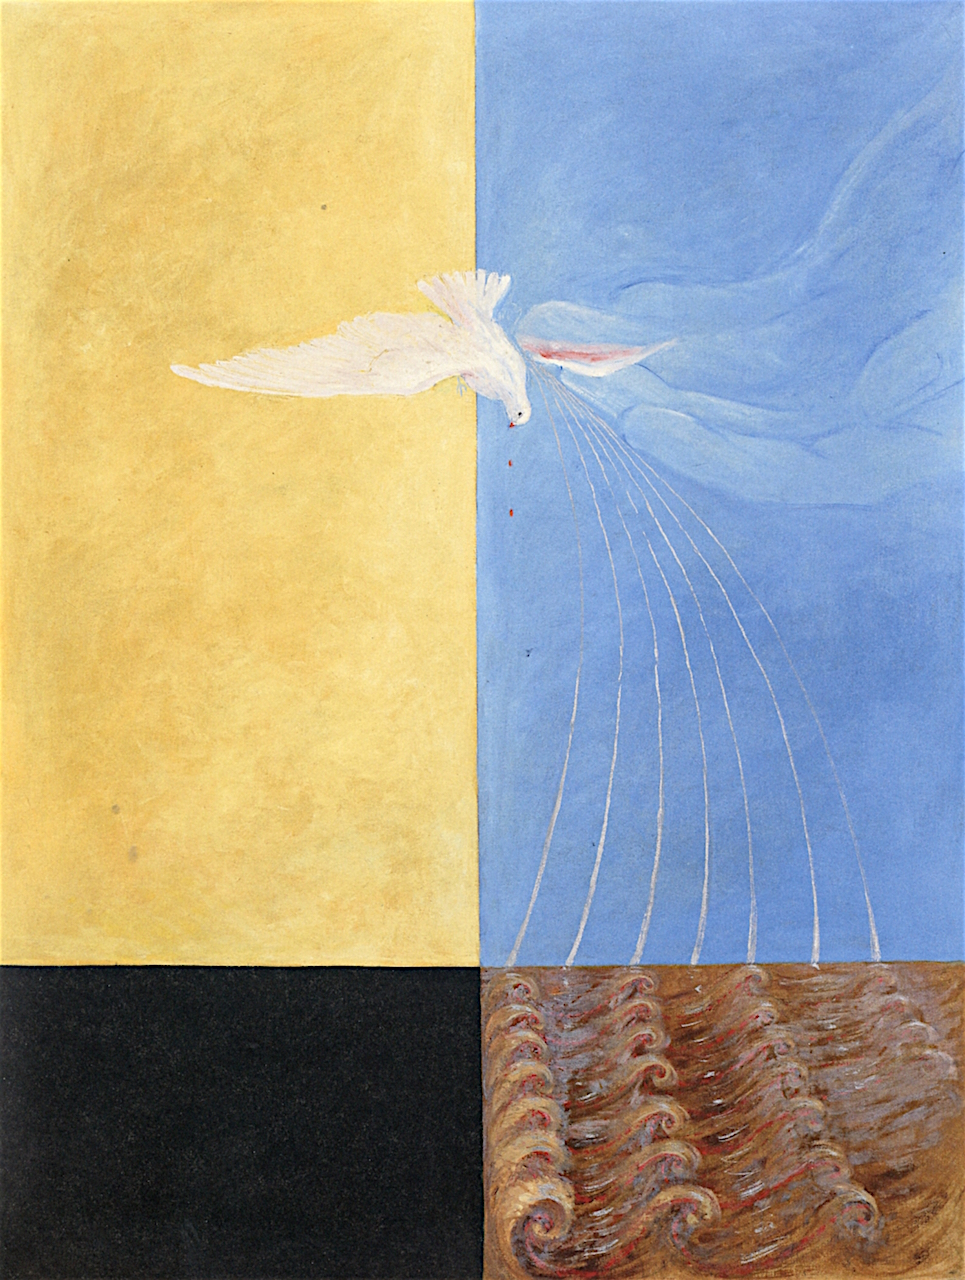 The Dove, No. 04, Group IX